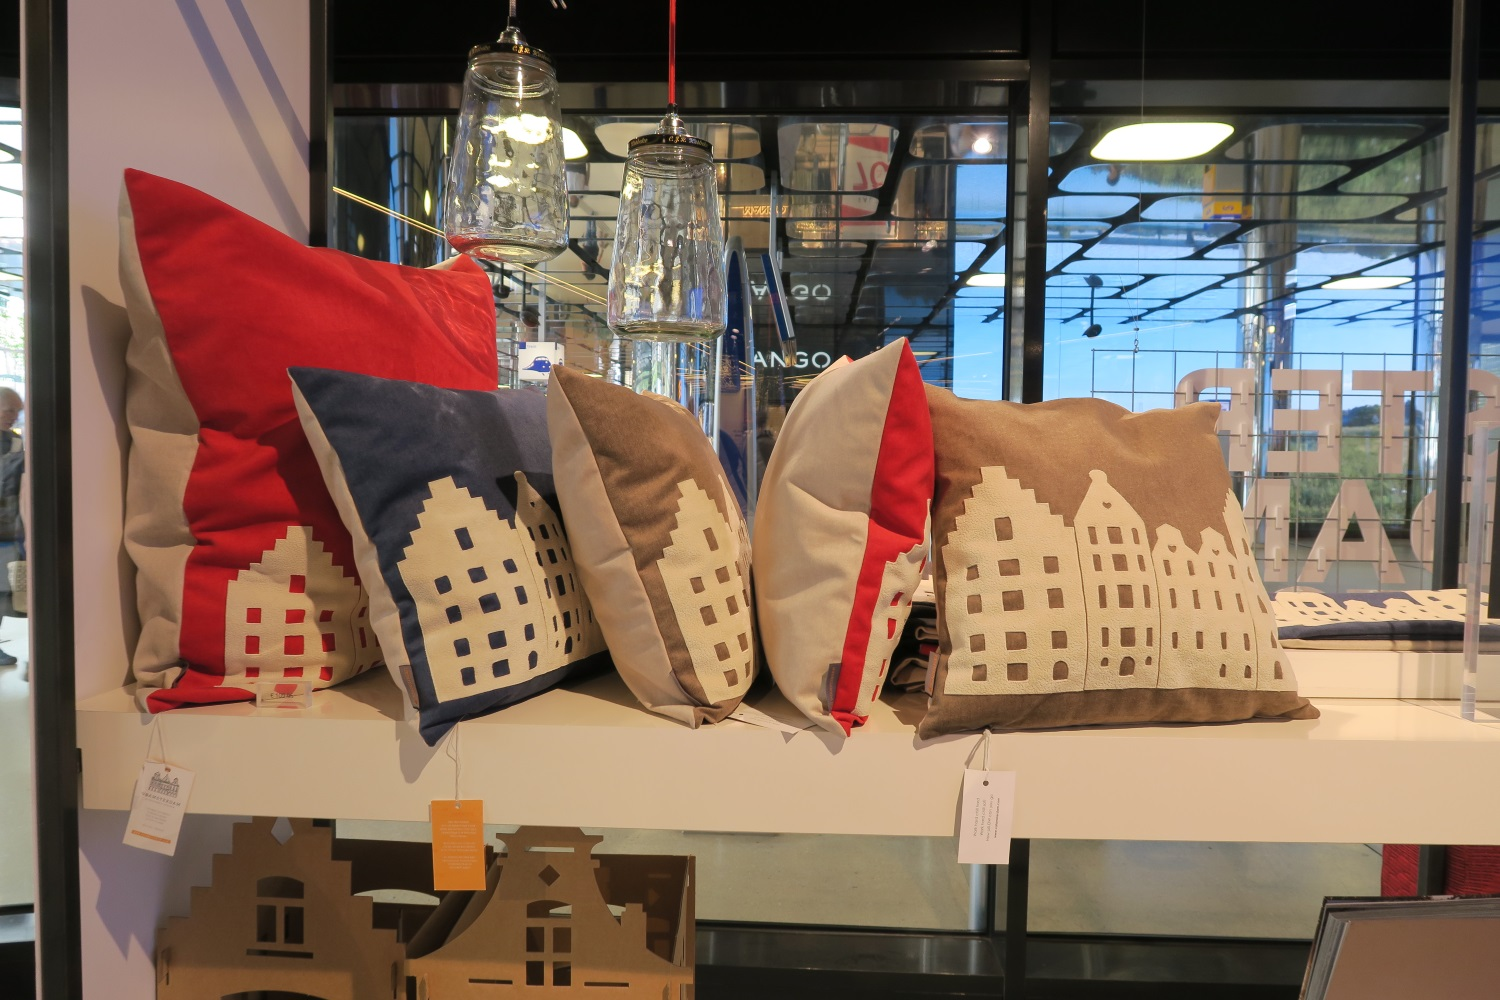 """Obviously I wasn't looking in the right spot, but these were about the only """"soft"""" items I saw. Pillows - that looked like Amsterdam. I looked at them closely and these pieces must have been glued on as there was no stitching around that applique part. The applique was some sort of a rubbery feeling type fabric - not a cotton, so probably not so easy to sew."""